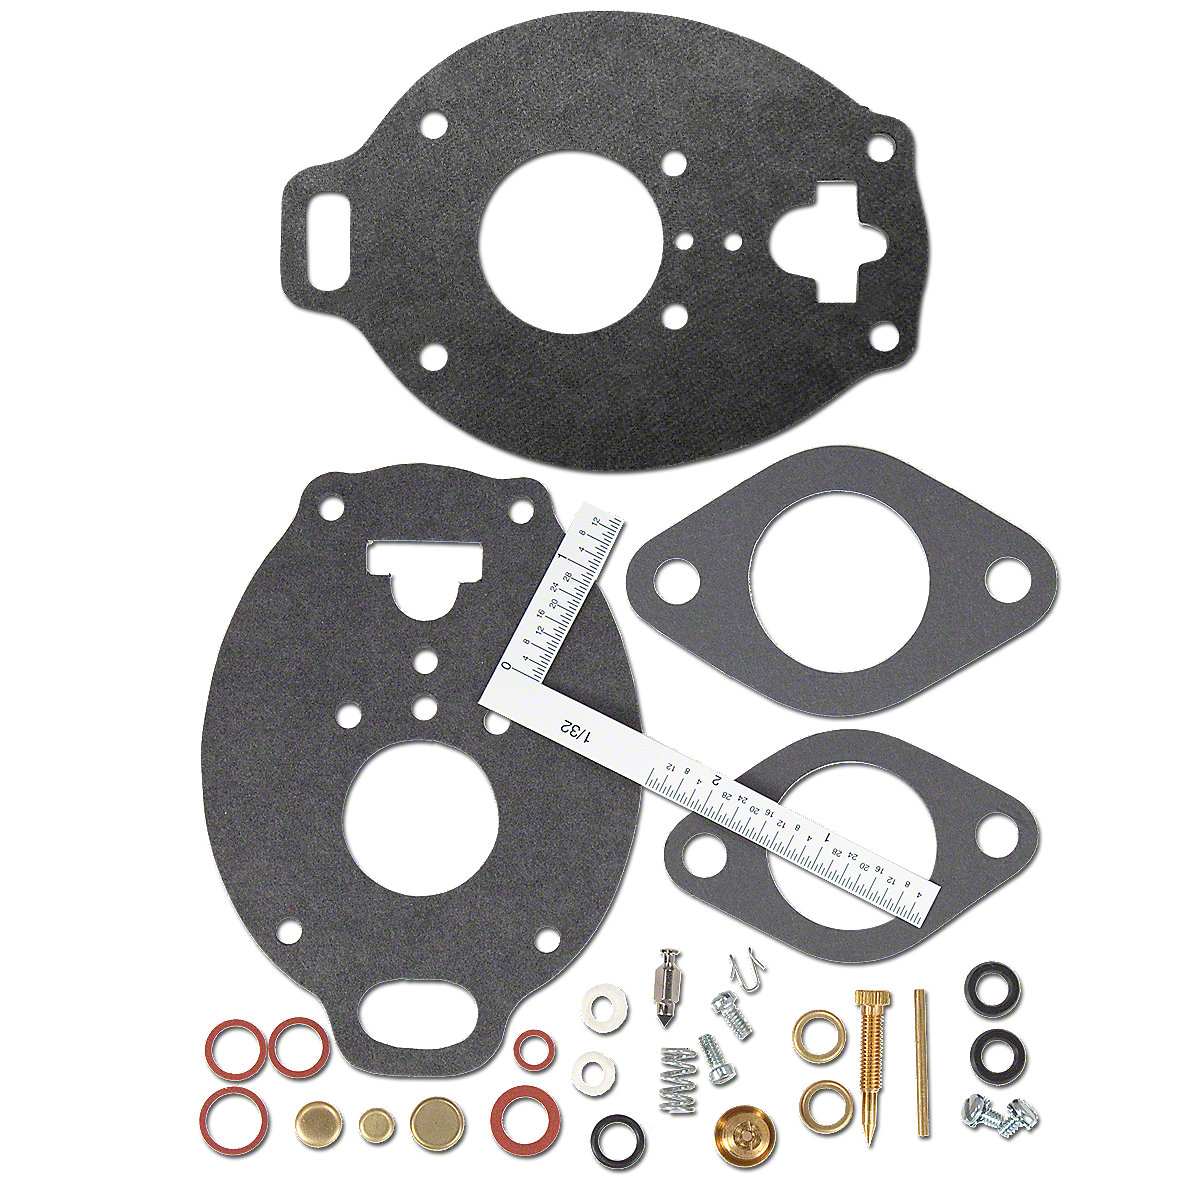 Marvel Schebler Carburetor Kit For Massey Ferguson: 1001, 150, 165, 175, 180, 302, 303, 304, 3165, 356, 65, Massey Harris: 33, 333